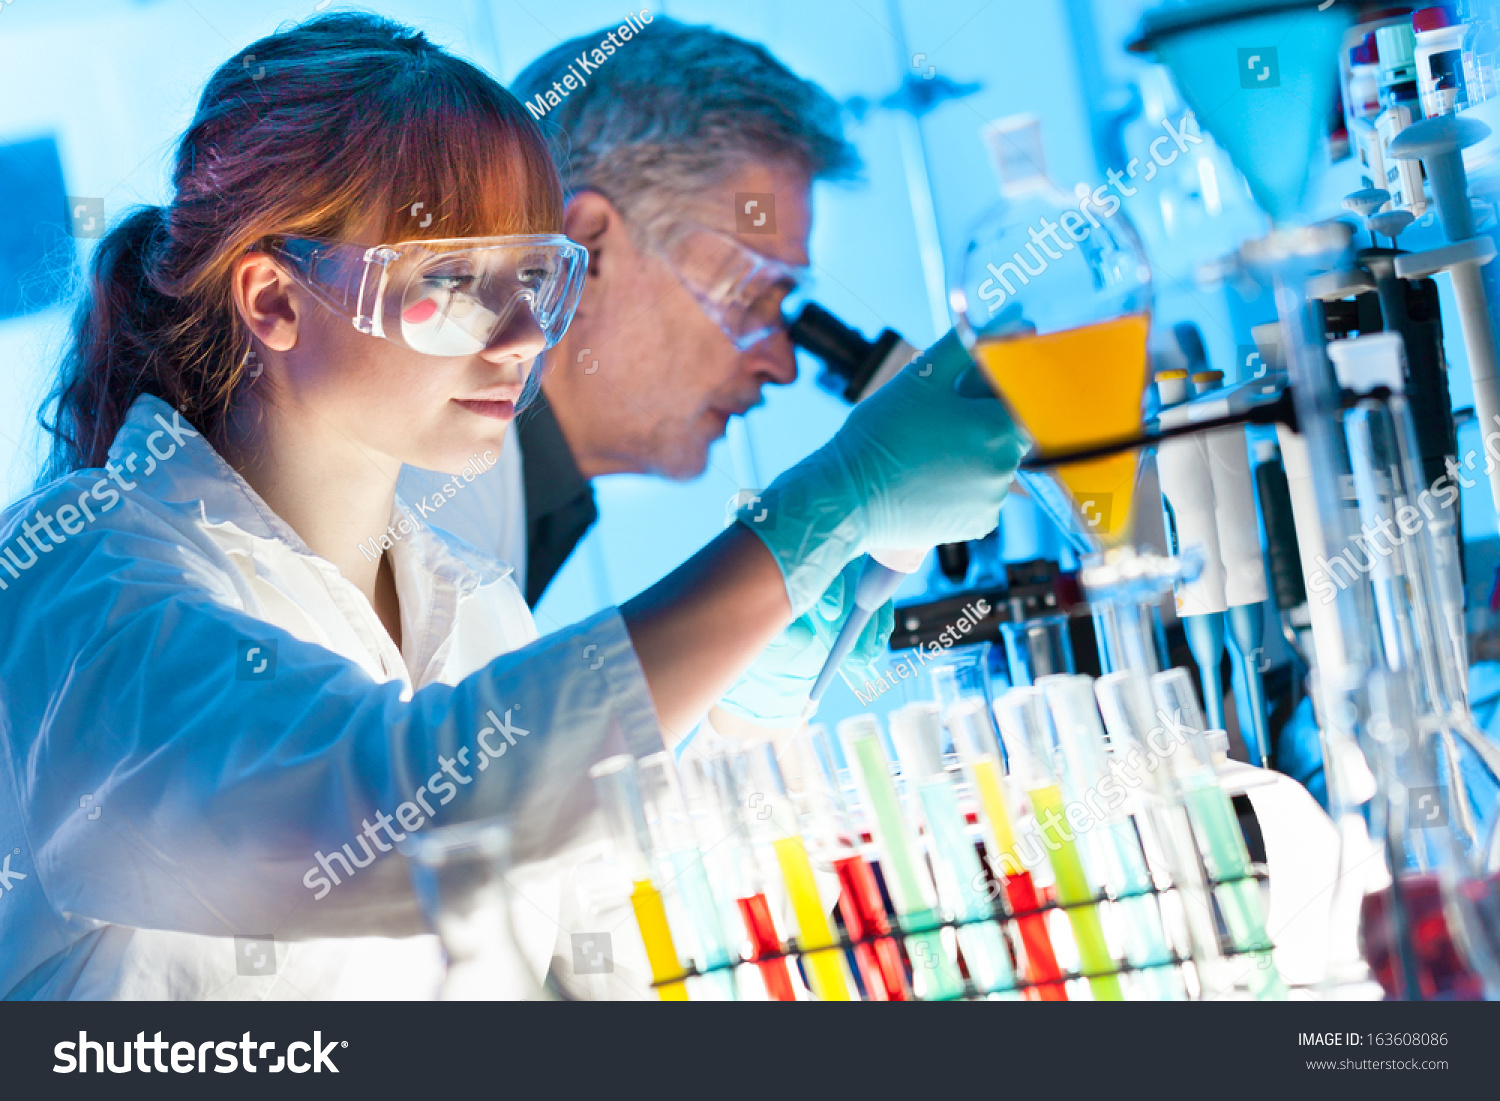 how to become a biochemistry scientist